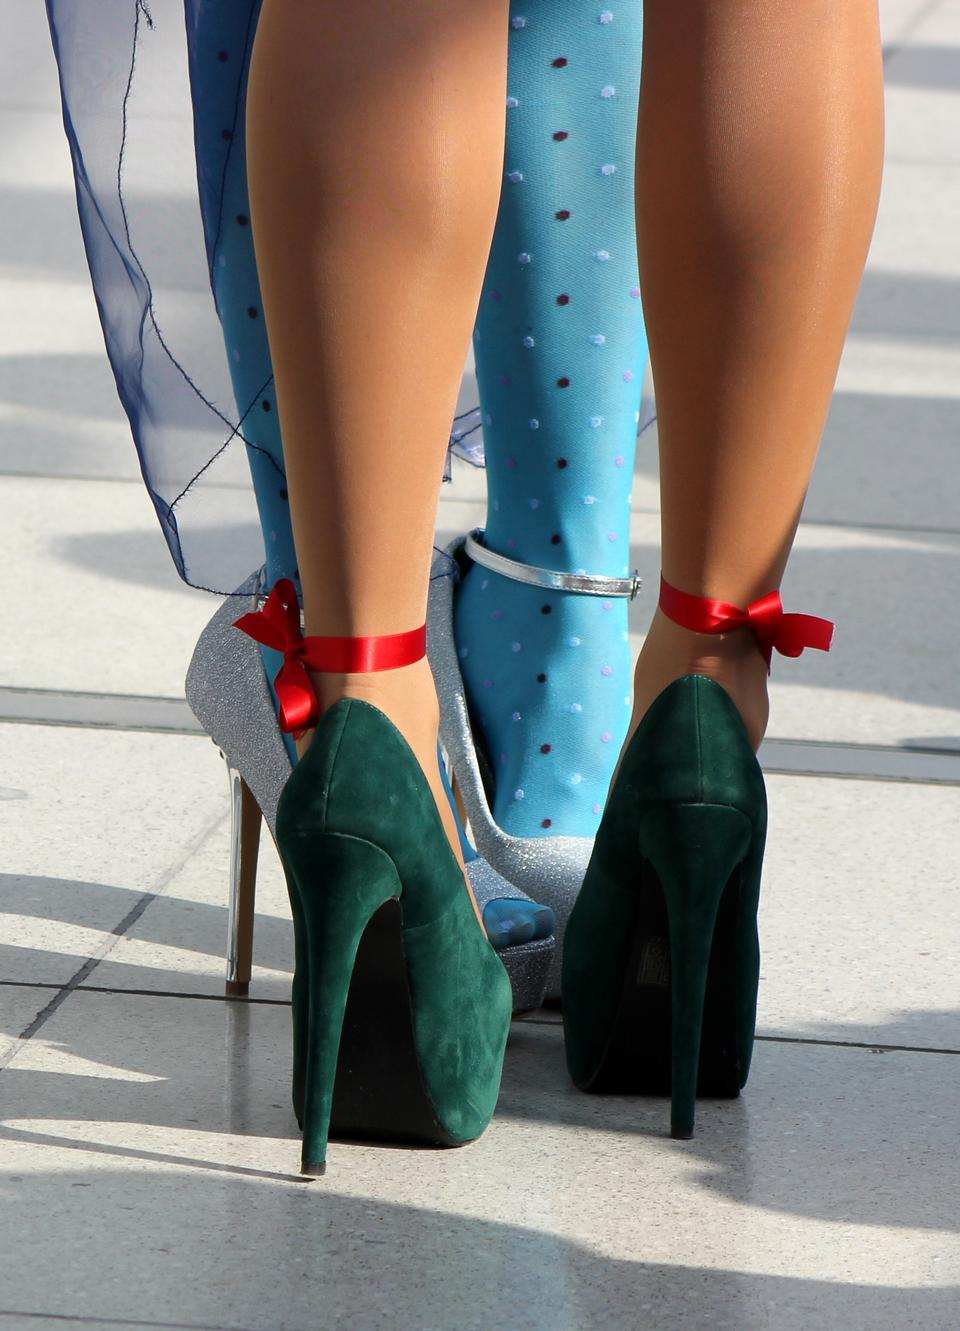 Sexy female high heeled green shoes on the way